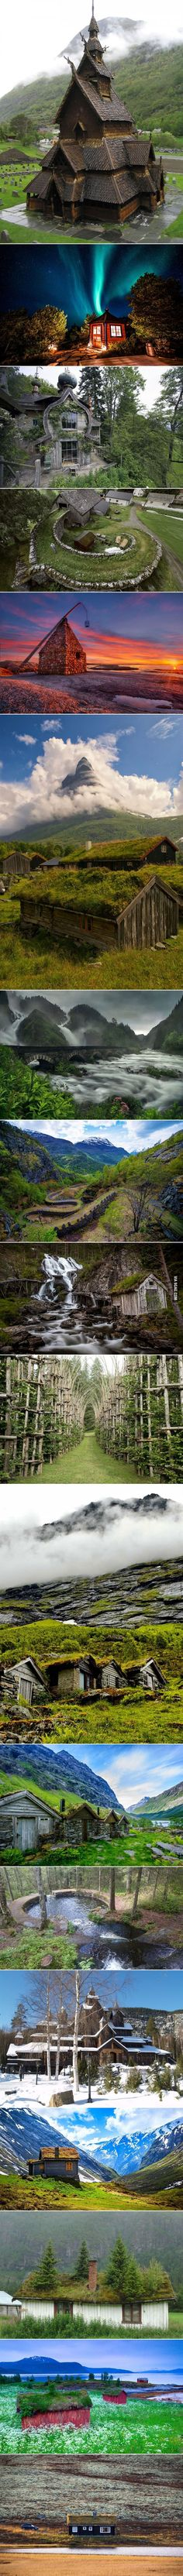 Norway... land of trolls and beautiful architecture